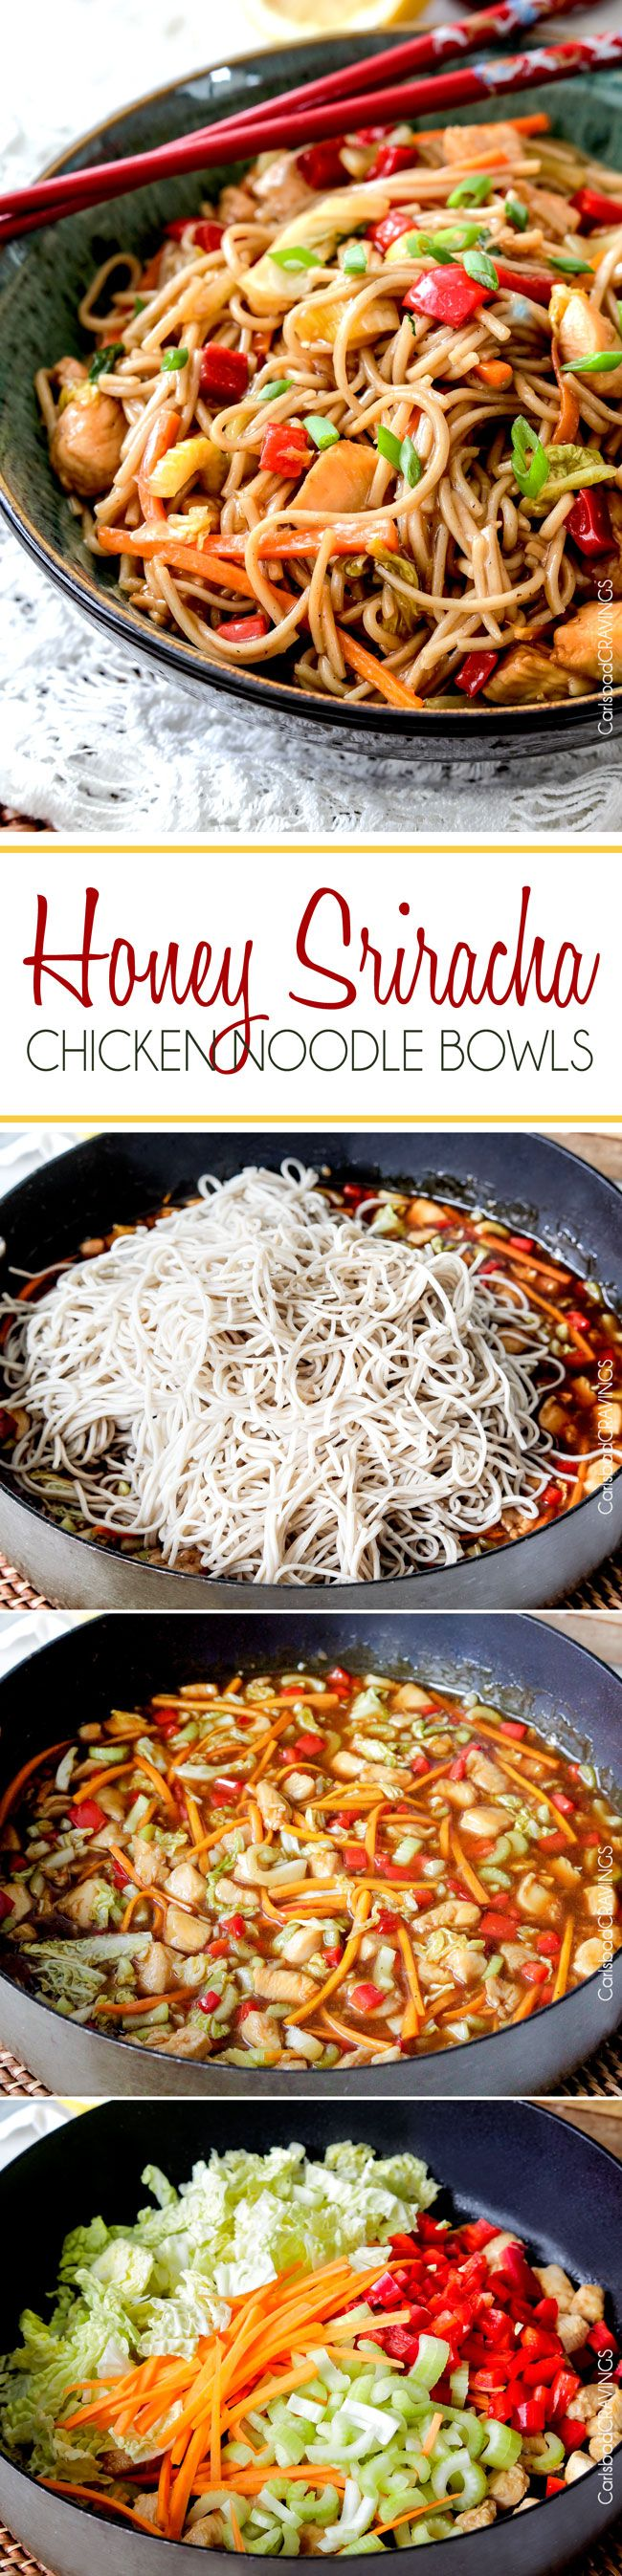 Sweet and spicy Honey Sriracha Chicken Noodle Bowls smothered in the most delectable sweet heat sauce.